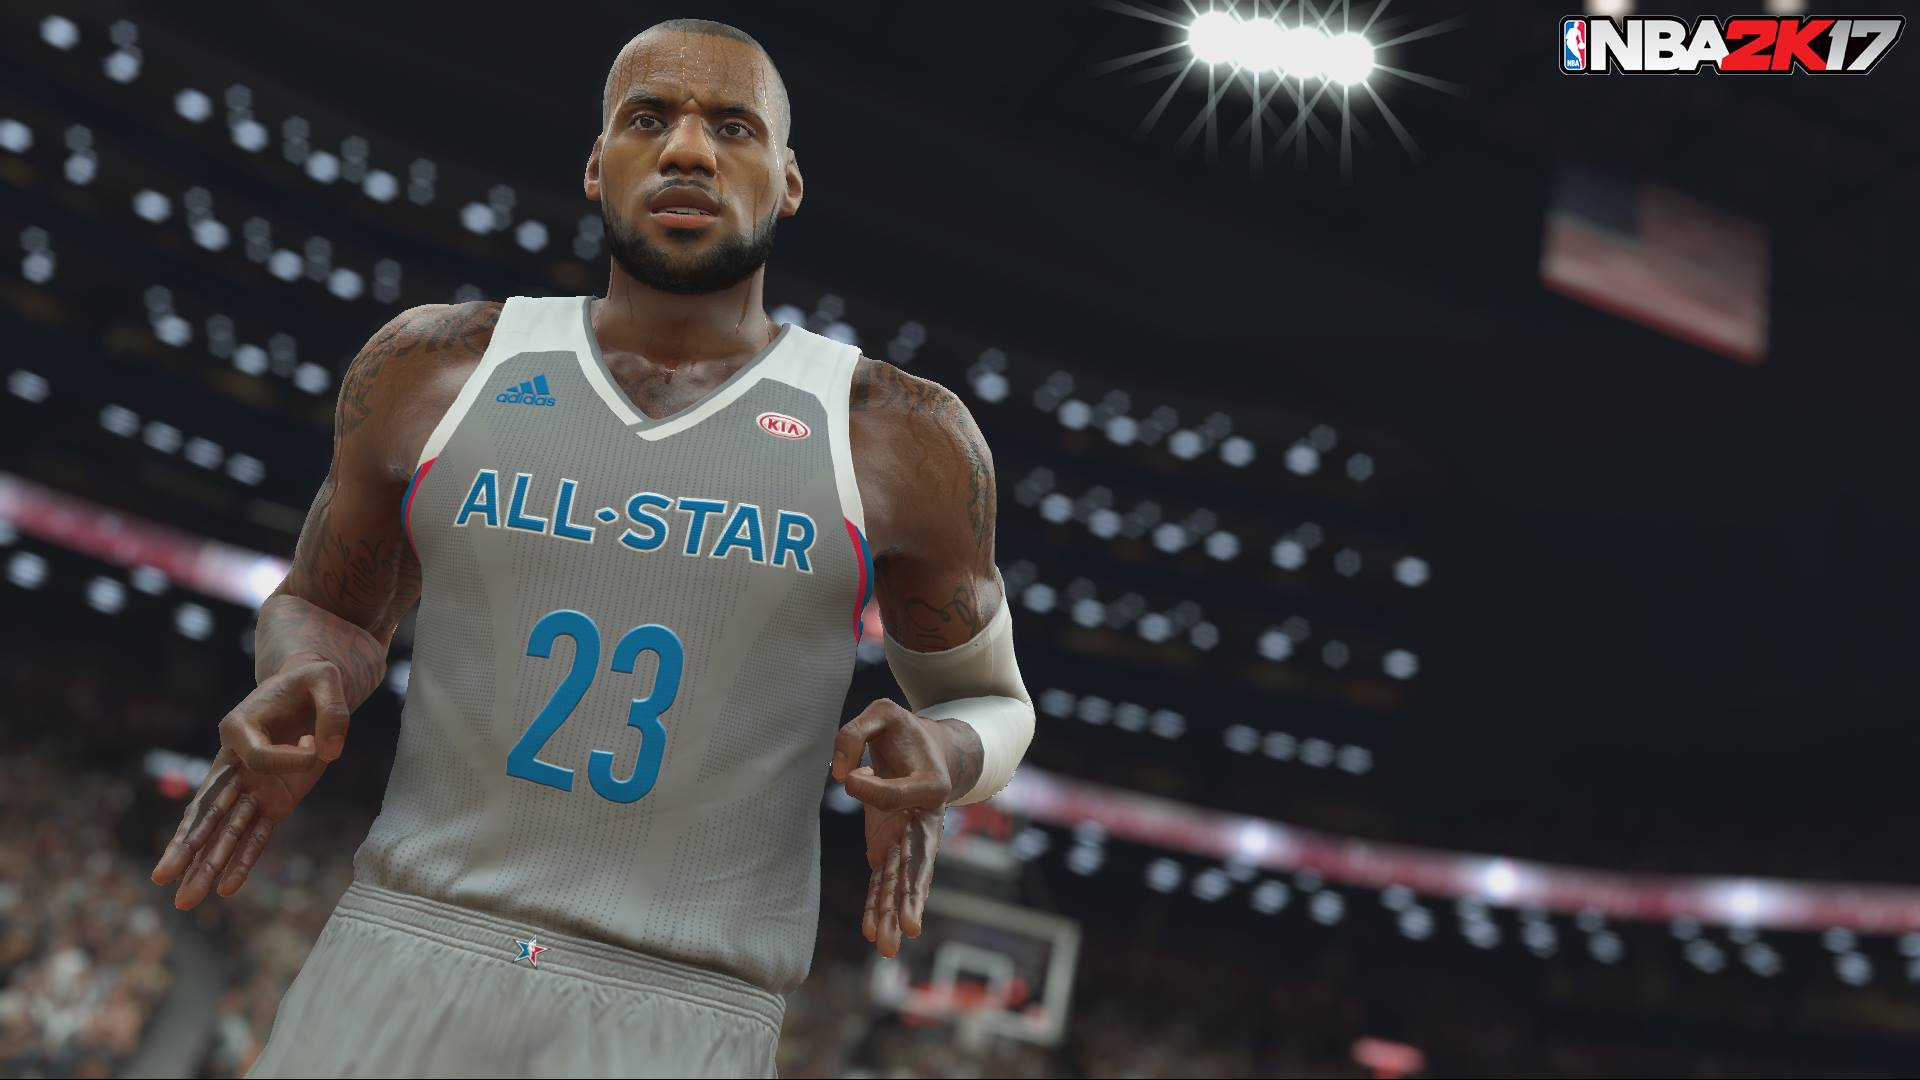 Video gamers now have a chance to compete for an NBA title, in an actual NBA arena and get paid by the some of the same people who pay LeBron James and Steph Curry. (Photo: NBA 2K/ Facebook)